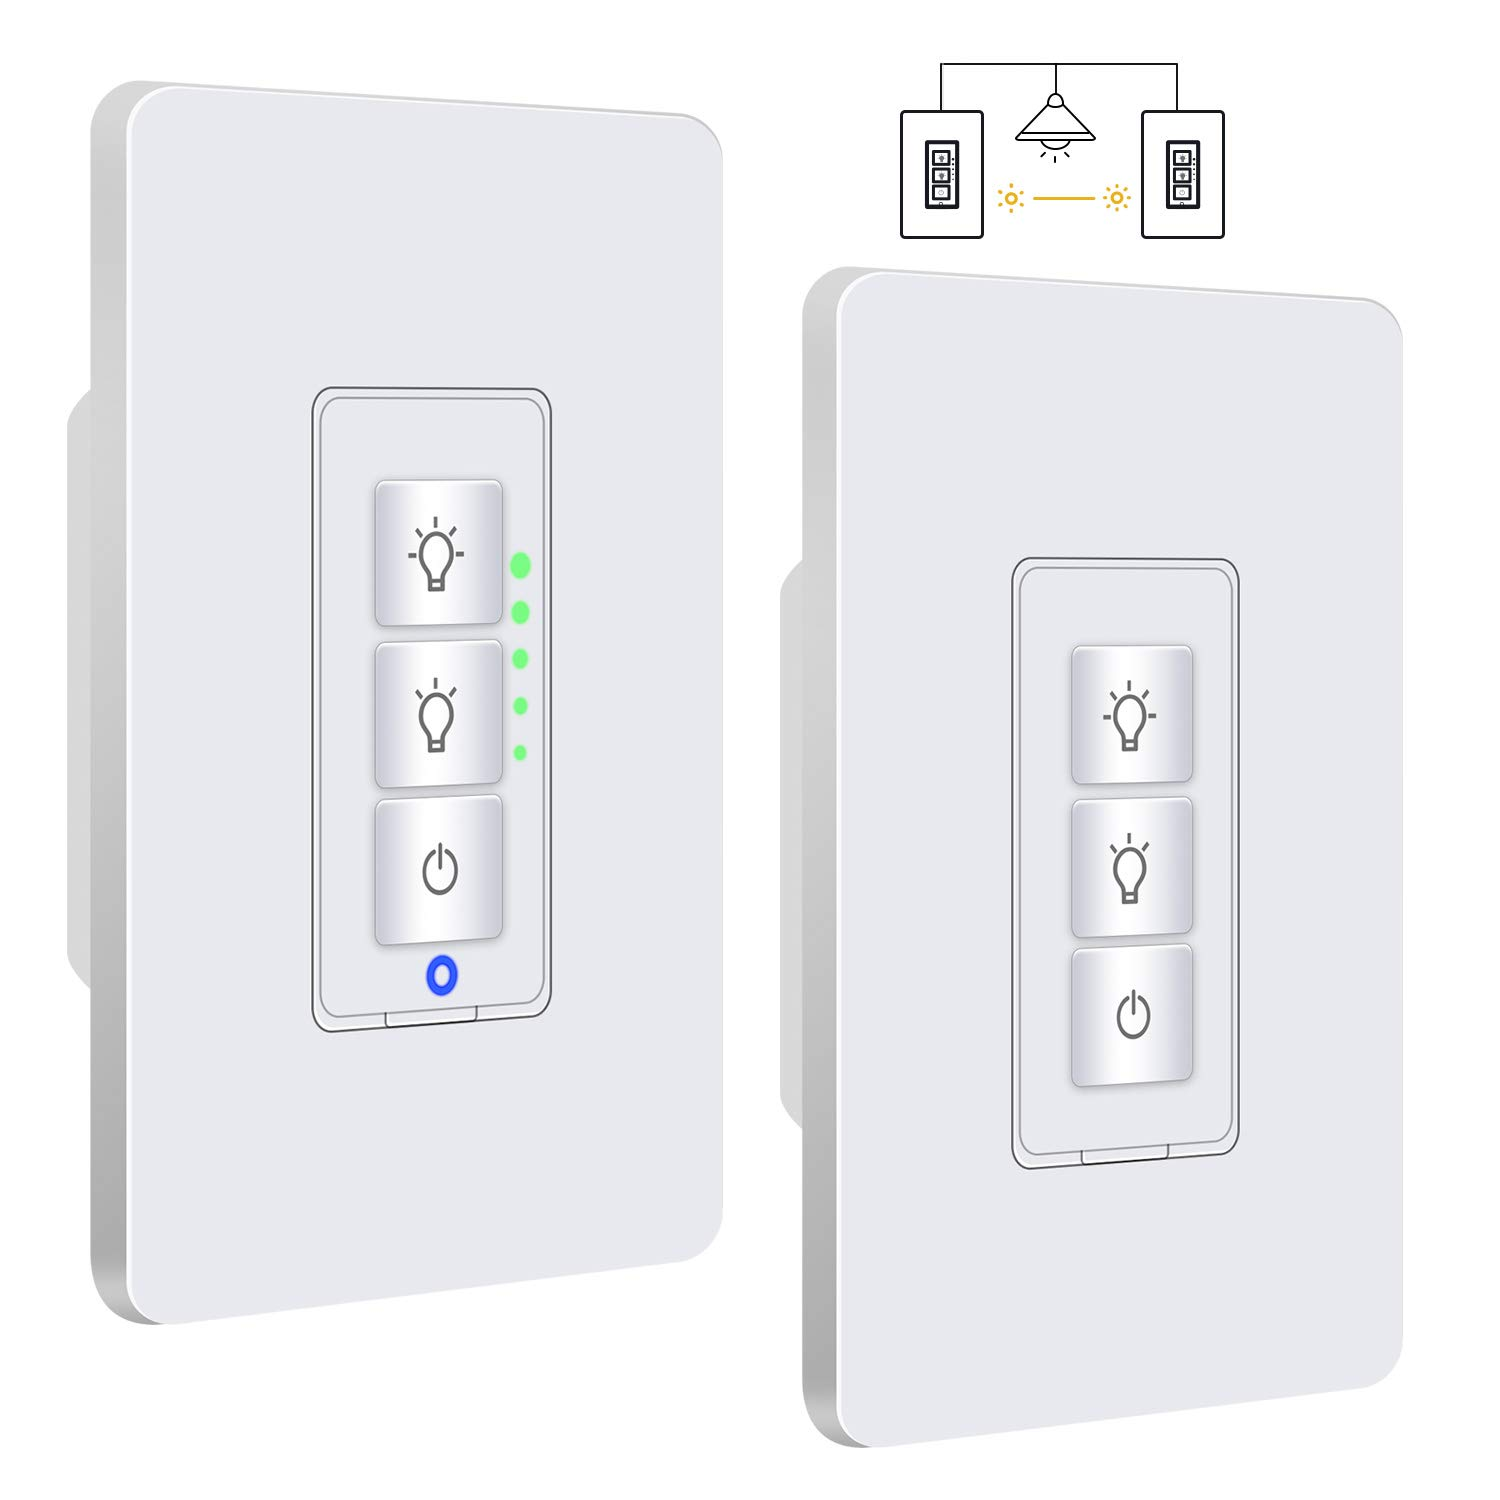 Justcool 3 Way Smart Dimmer Switch Kit: Wifi Timer Light Switch works with Alexa Google Assistant And IFTTT, Master Switch And Add-on Switch Dual dimmable, SmartLife App, NEUTRAL Wire Required, 3-Way